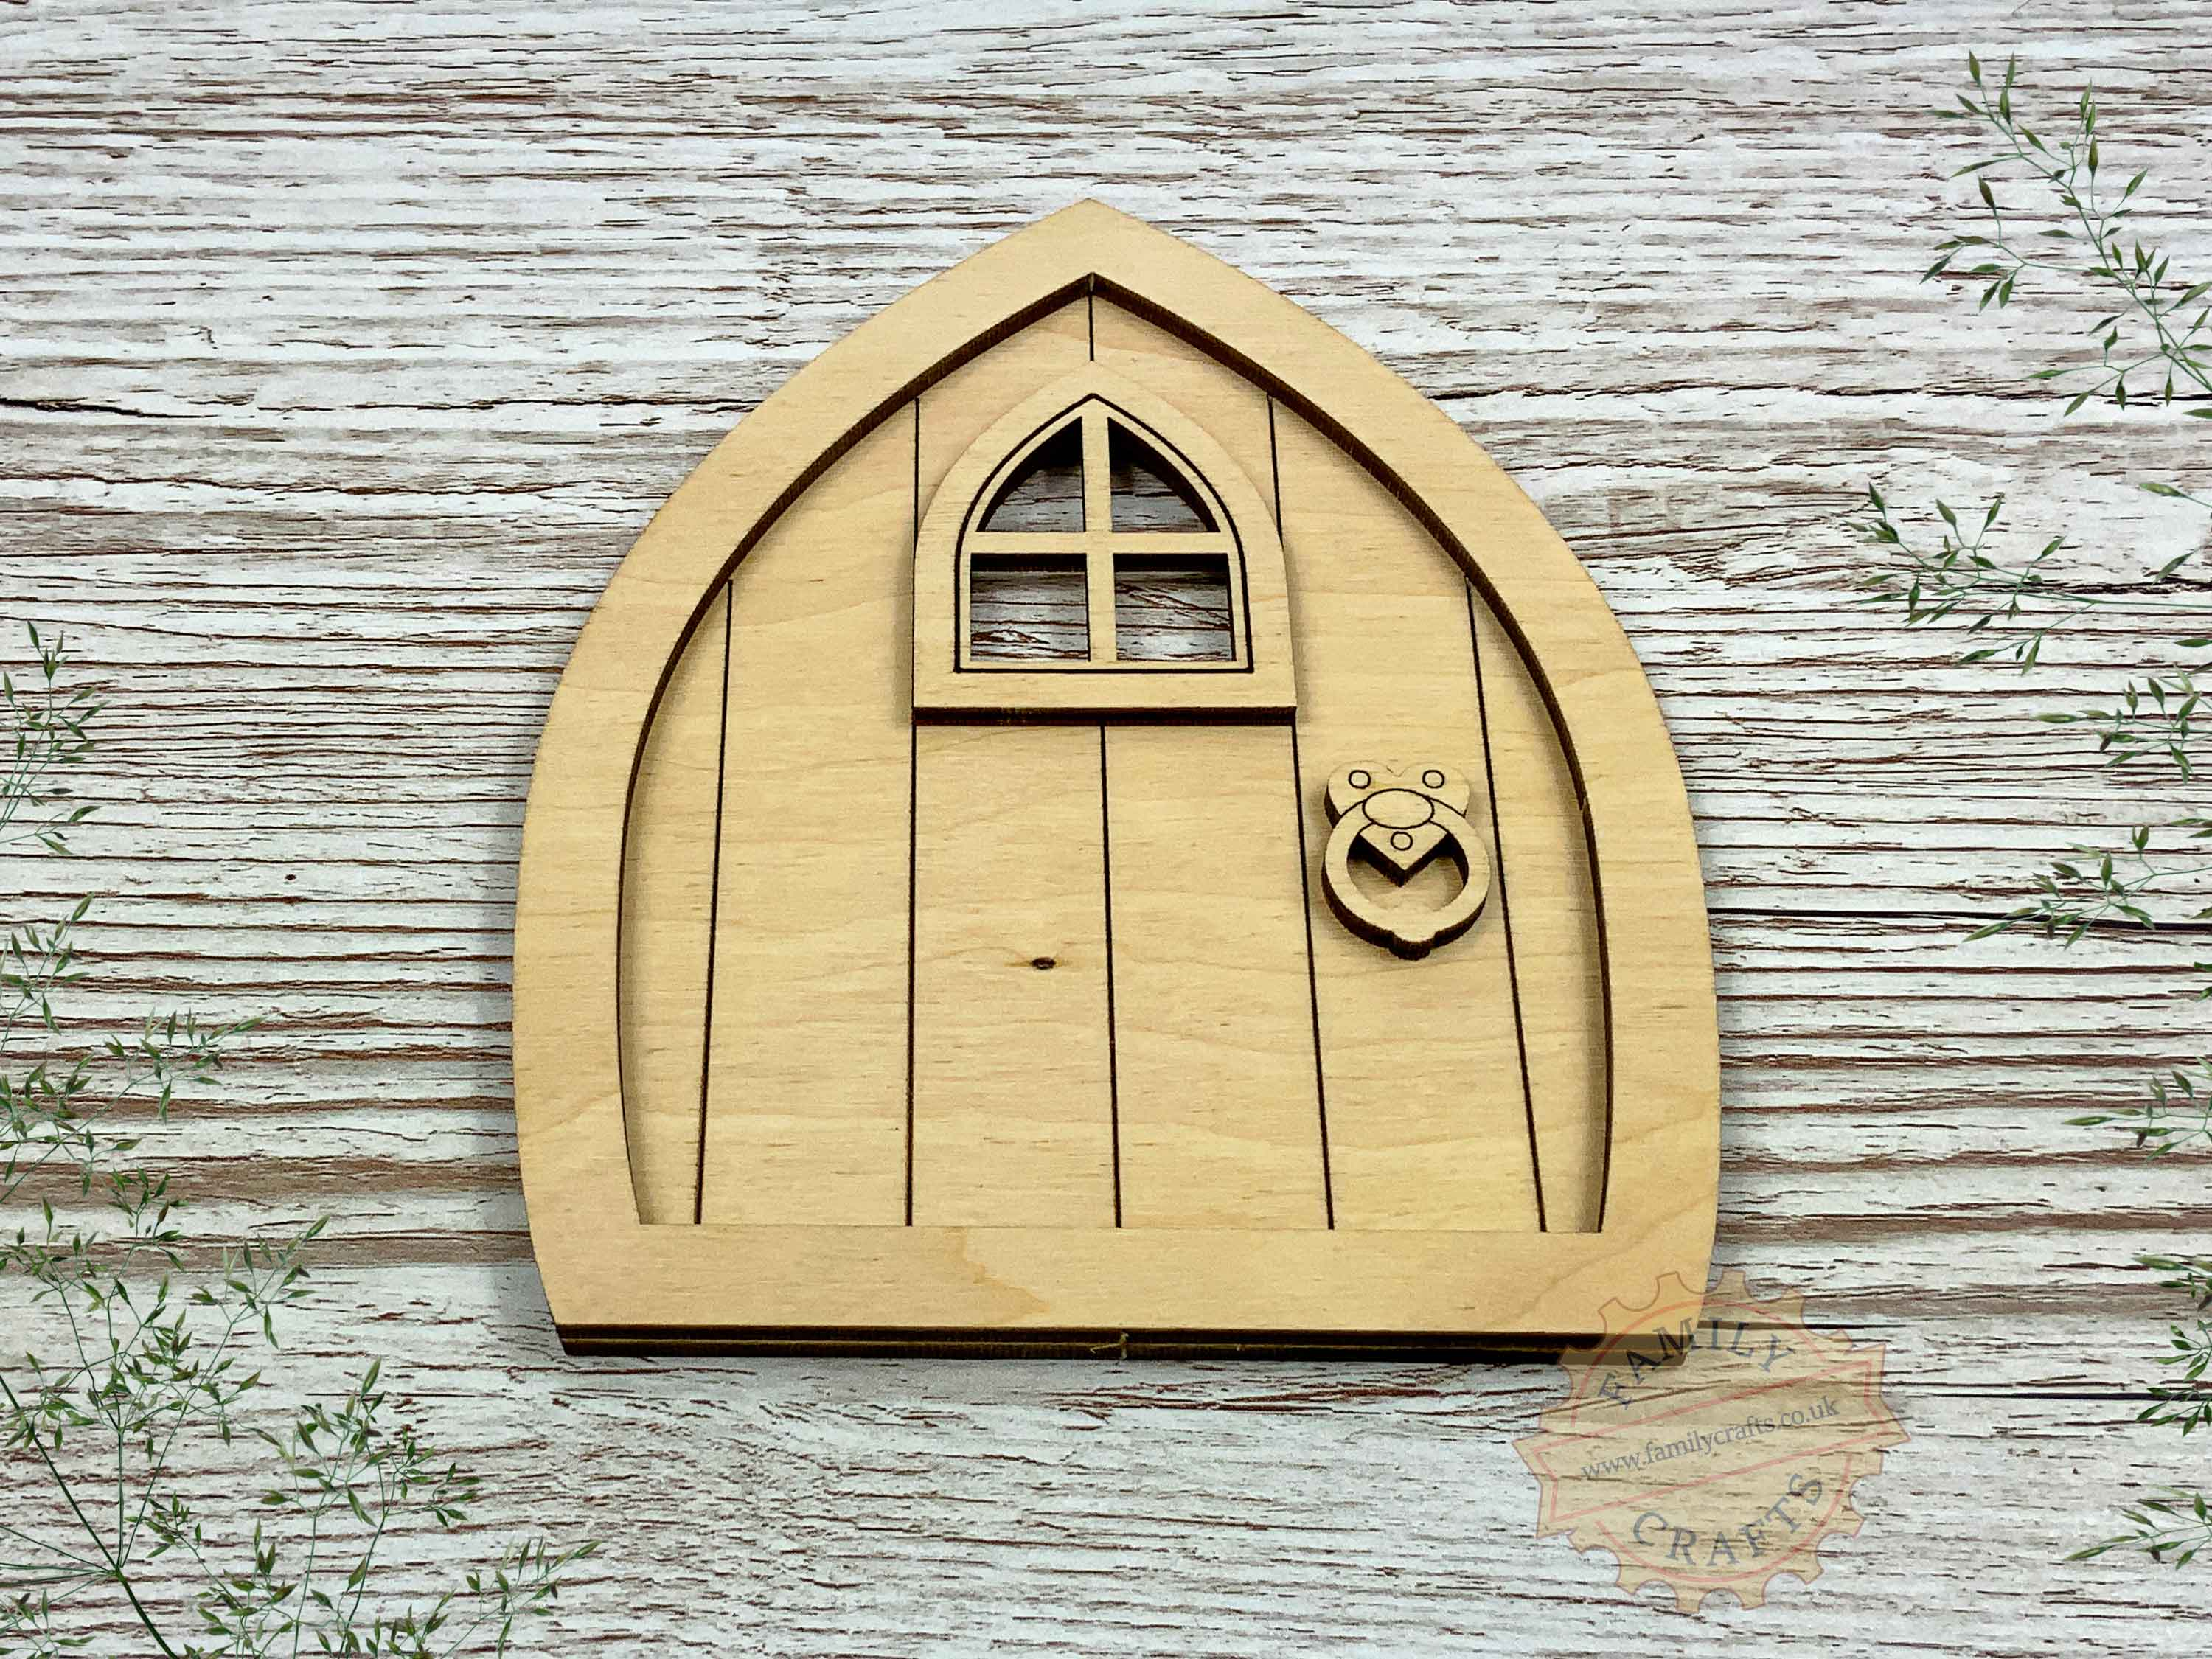 plywood pointed fairy door kit view front